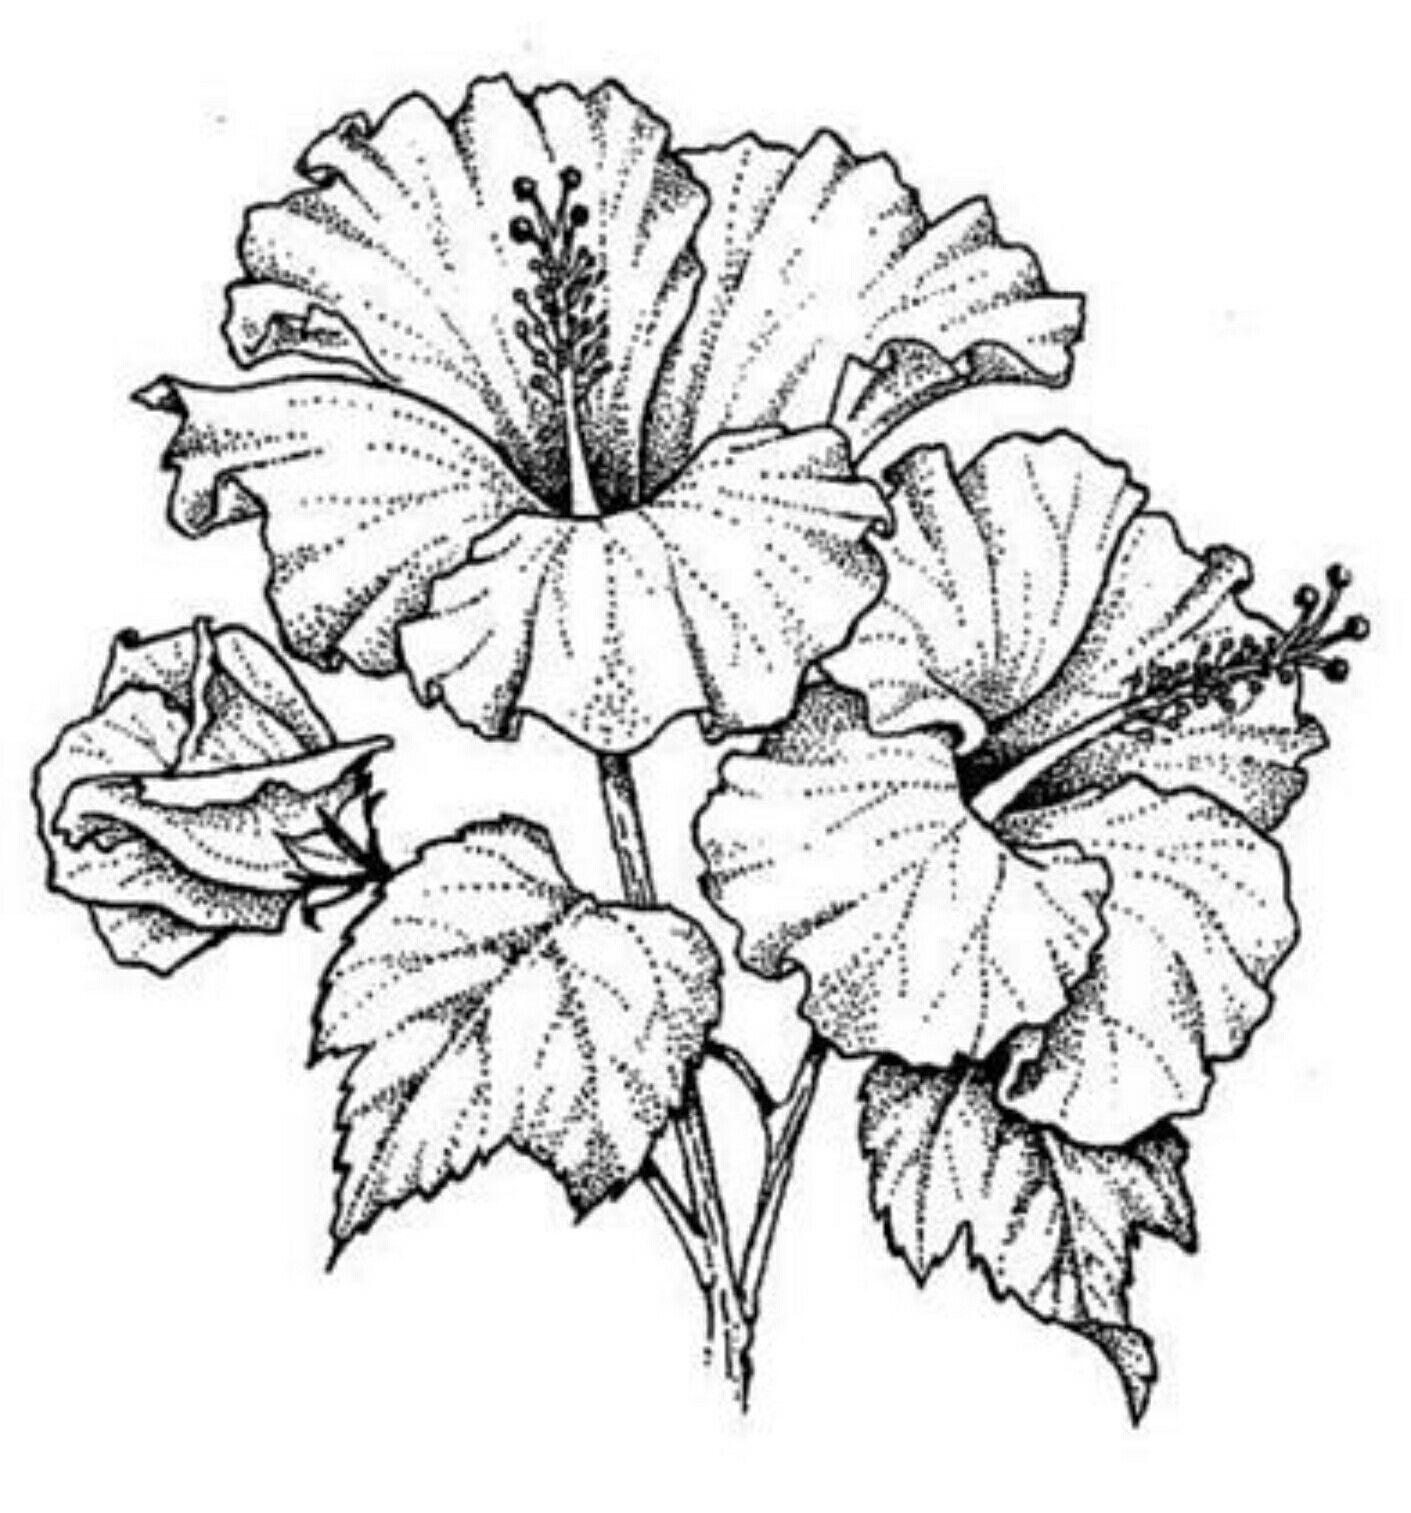 hibiscus drawing hibiscus drawing by christopher lem hibiscus drawing